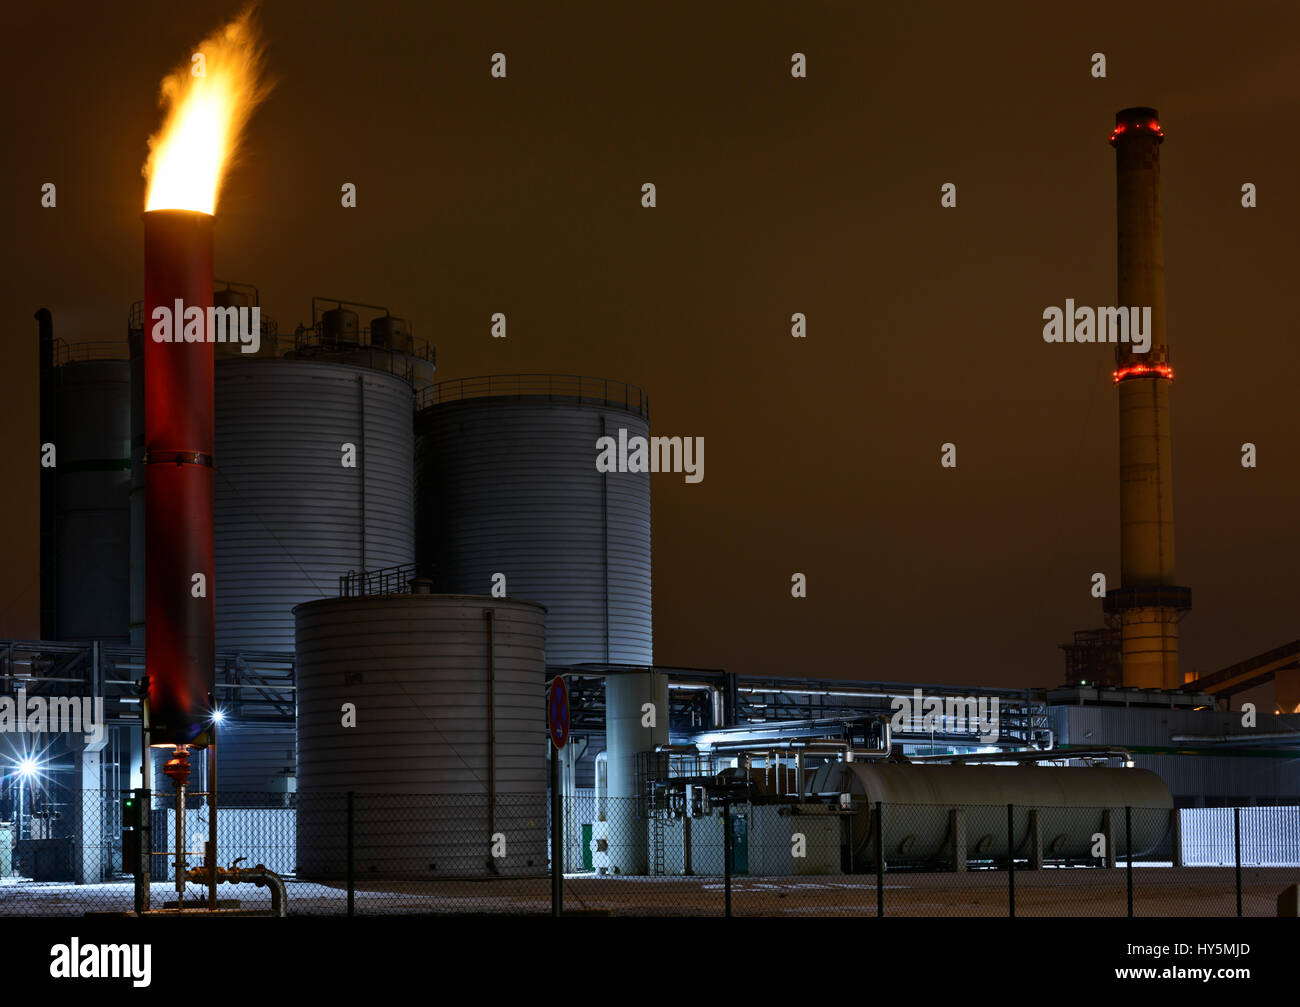 Sewage treatment plant at night. Clarifying gases are flared off. - Stock Image